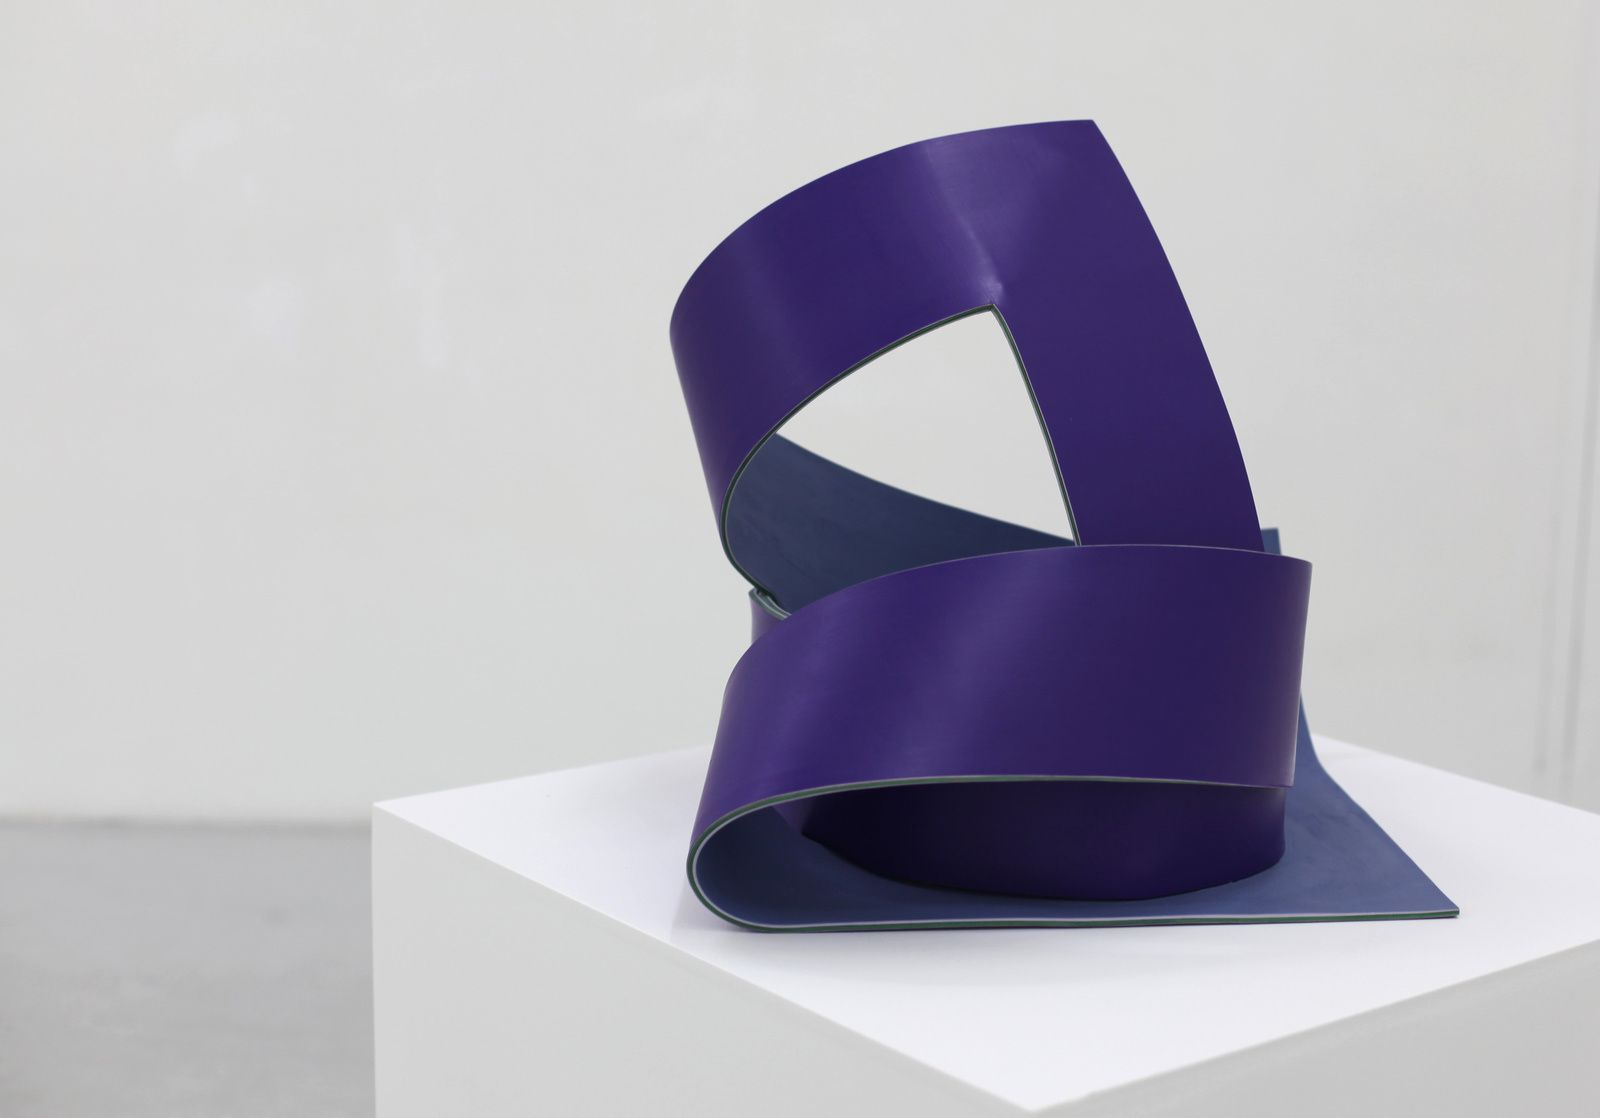 """Cadre infini violet"", 2018 de Laurence PAPOUIN - Courtesy Galerie RICHARD - PARIS © Photo Éric Simon"